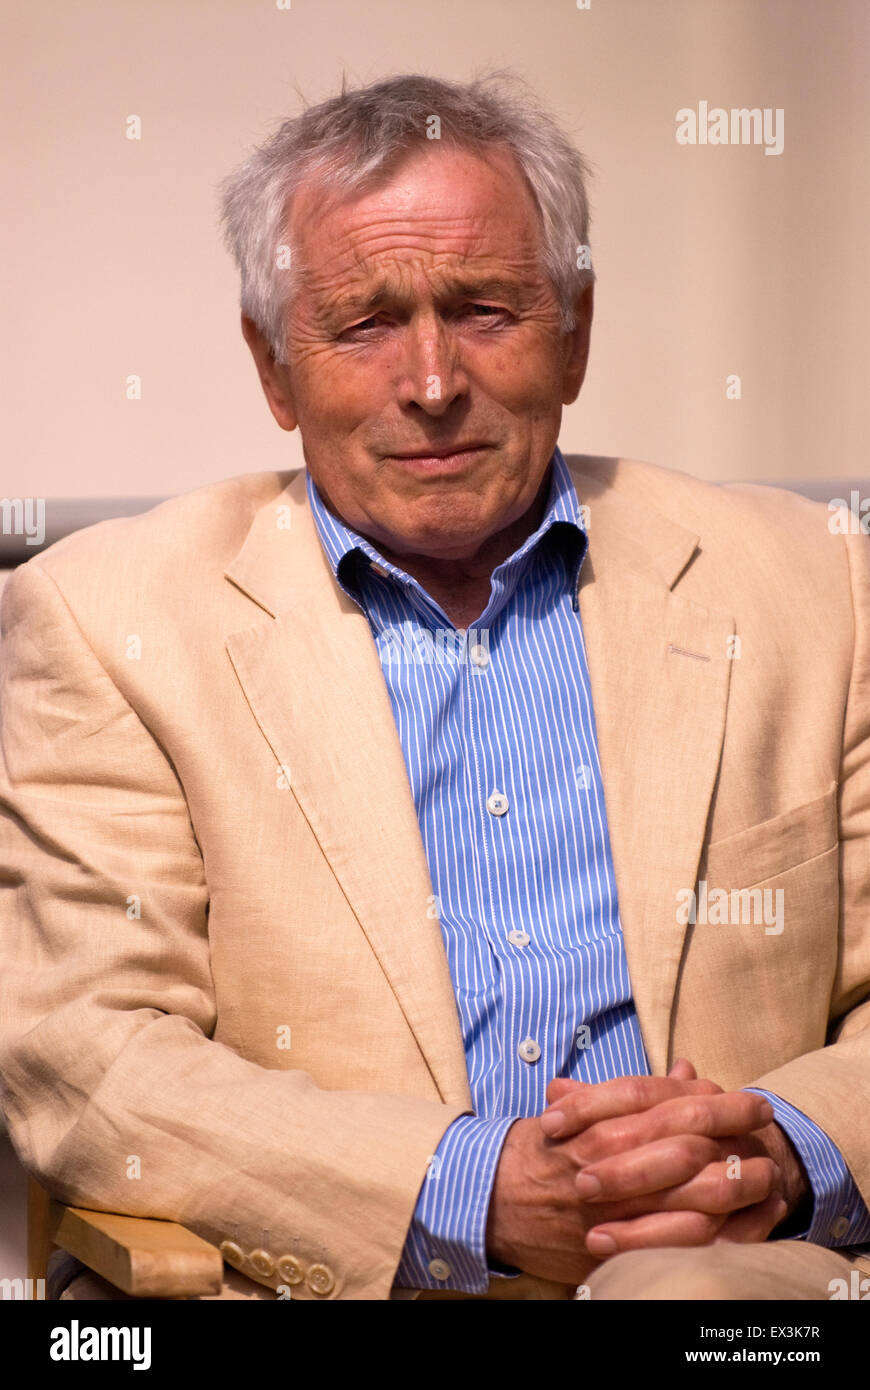 BBC Broadcaster Jonathan Dimbleby (b. 31 July 1944) attending opening of new classroom at his former school - Stock Image